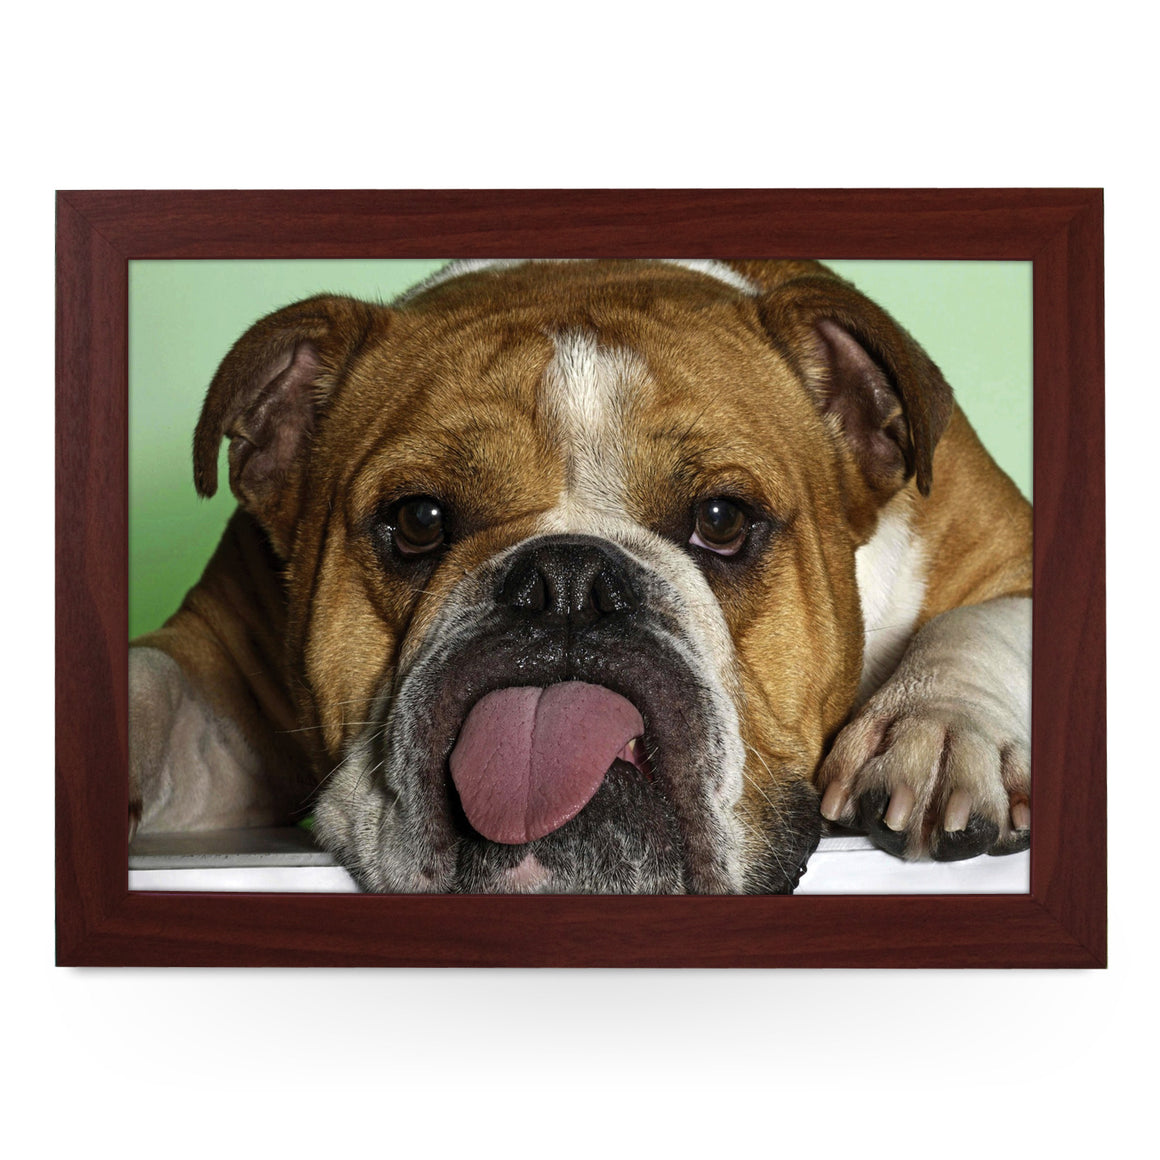 Bulldog Sticking Tongue Out Lap Tray - L0176